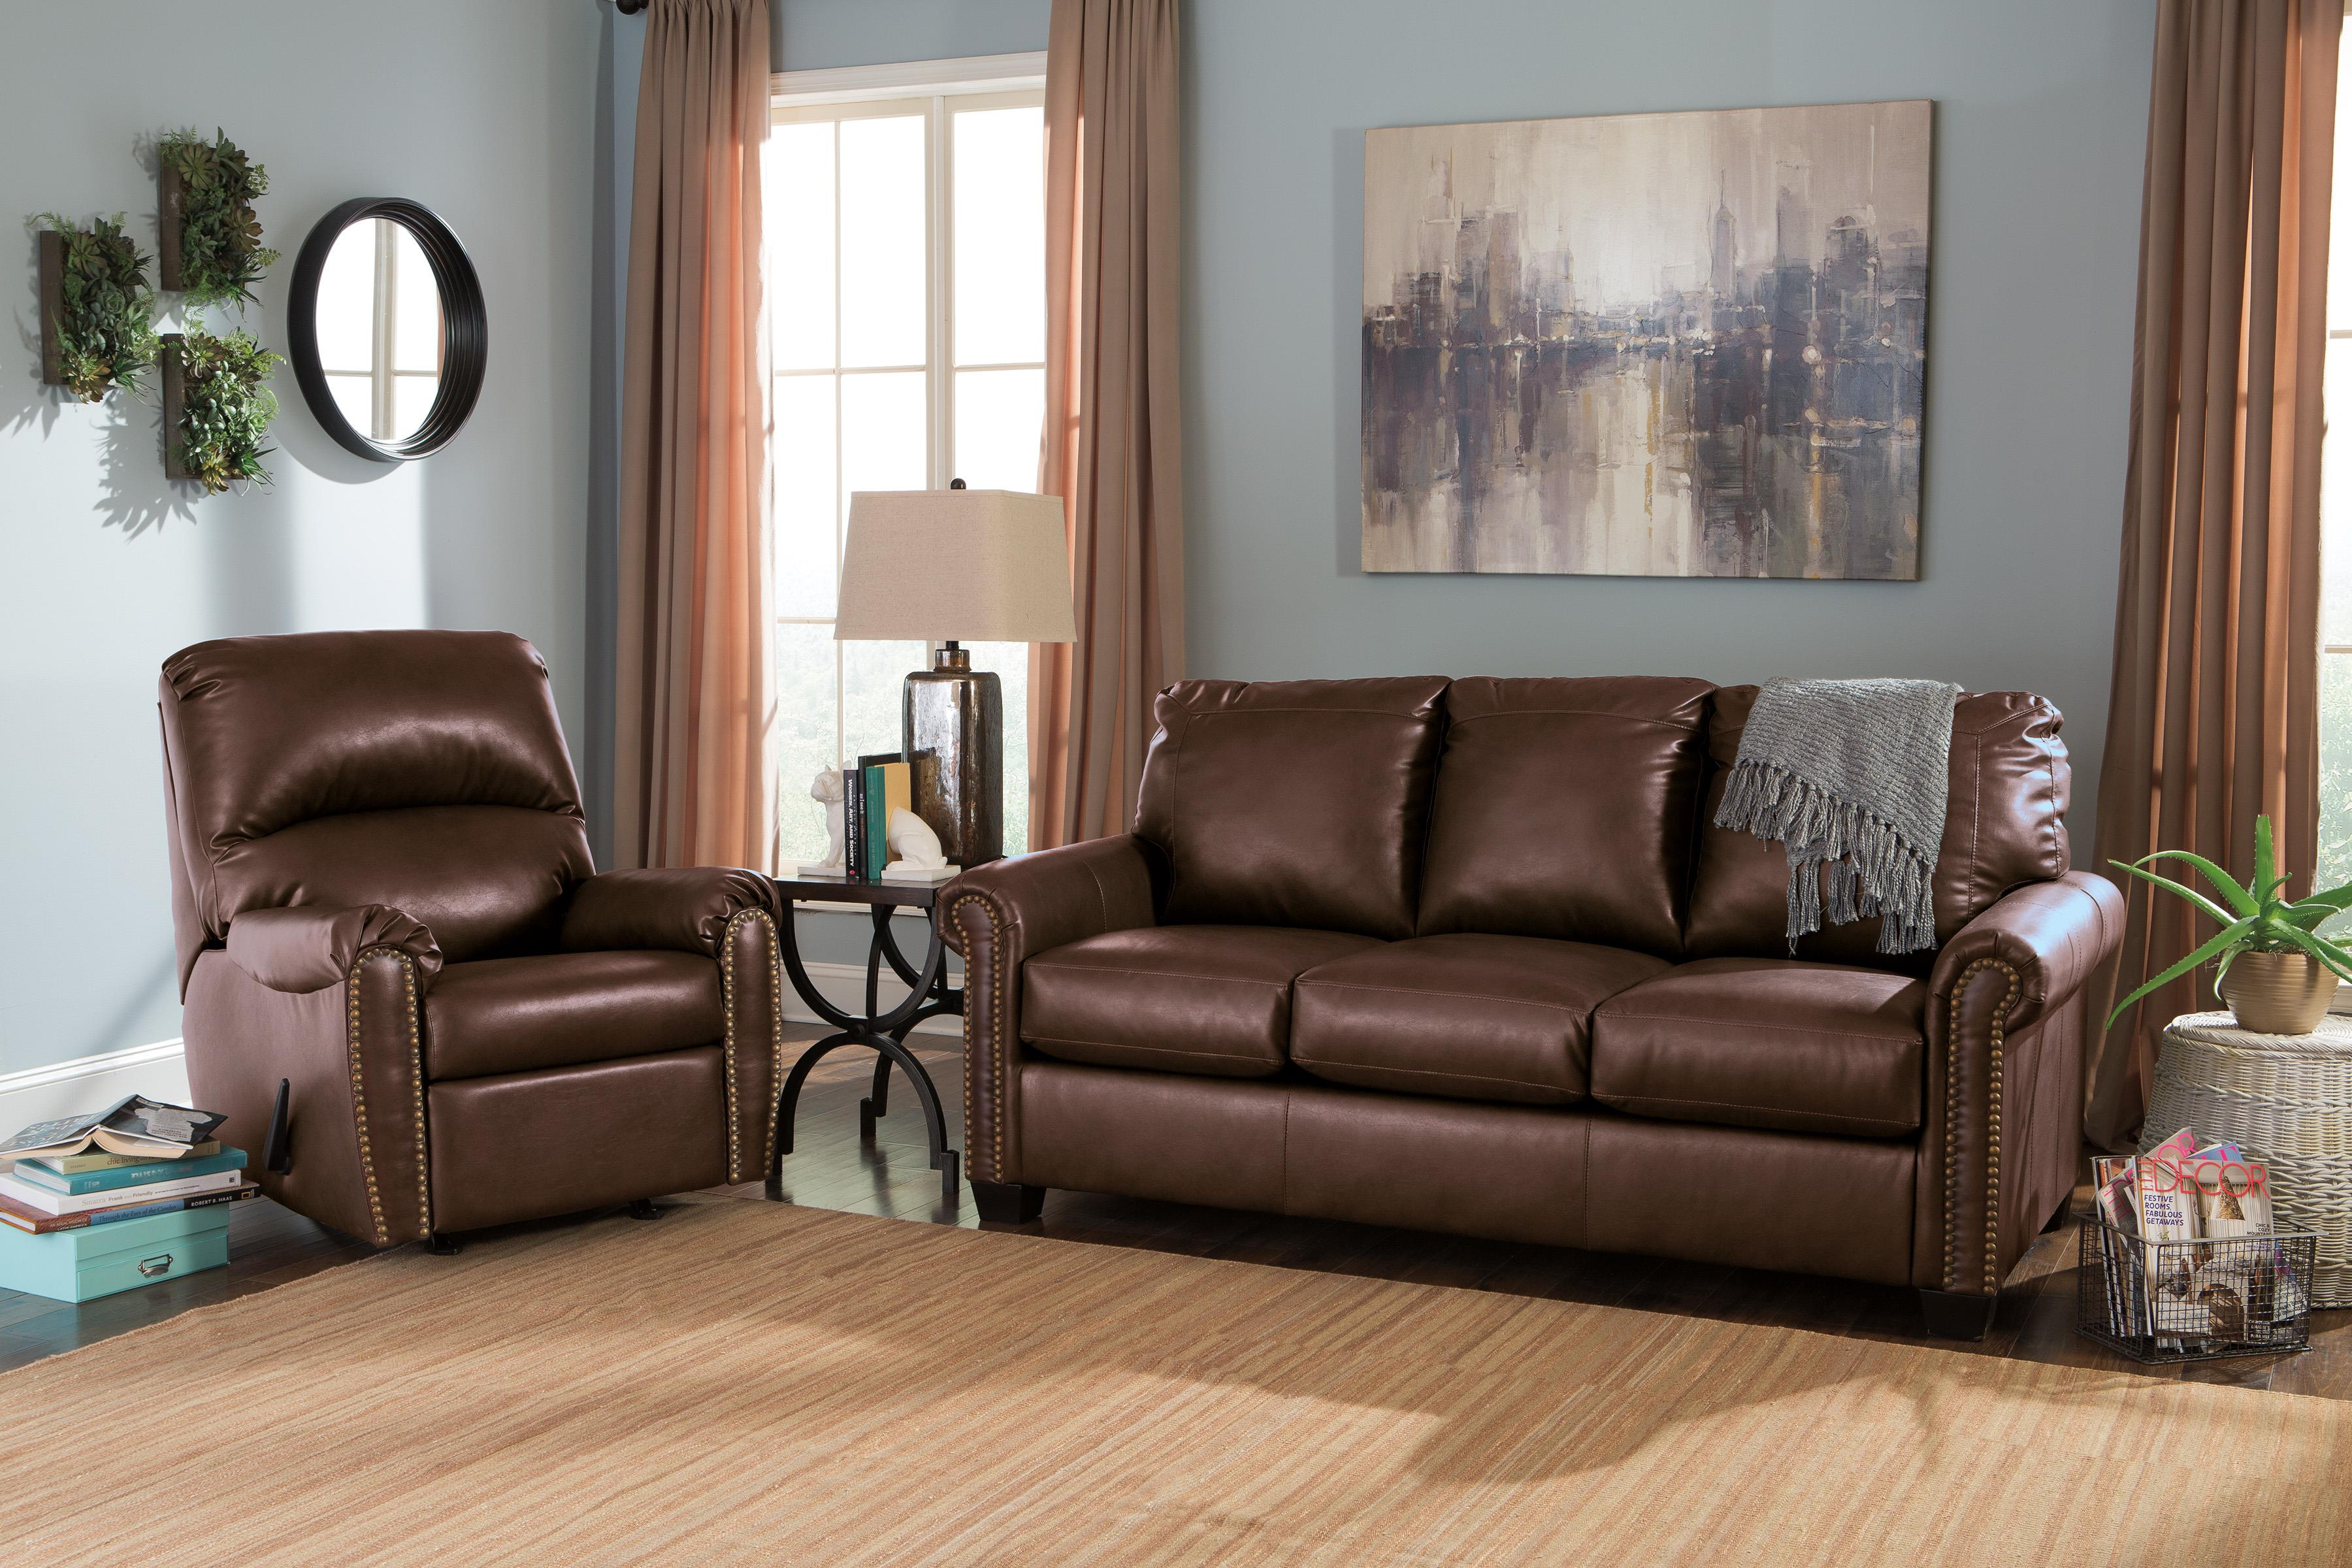 Signature Design by Ashley Lottie DuraBlend® Stationary Living Room Group - Item Number: 38000 Living Room Group 1